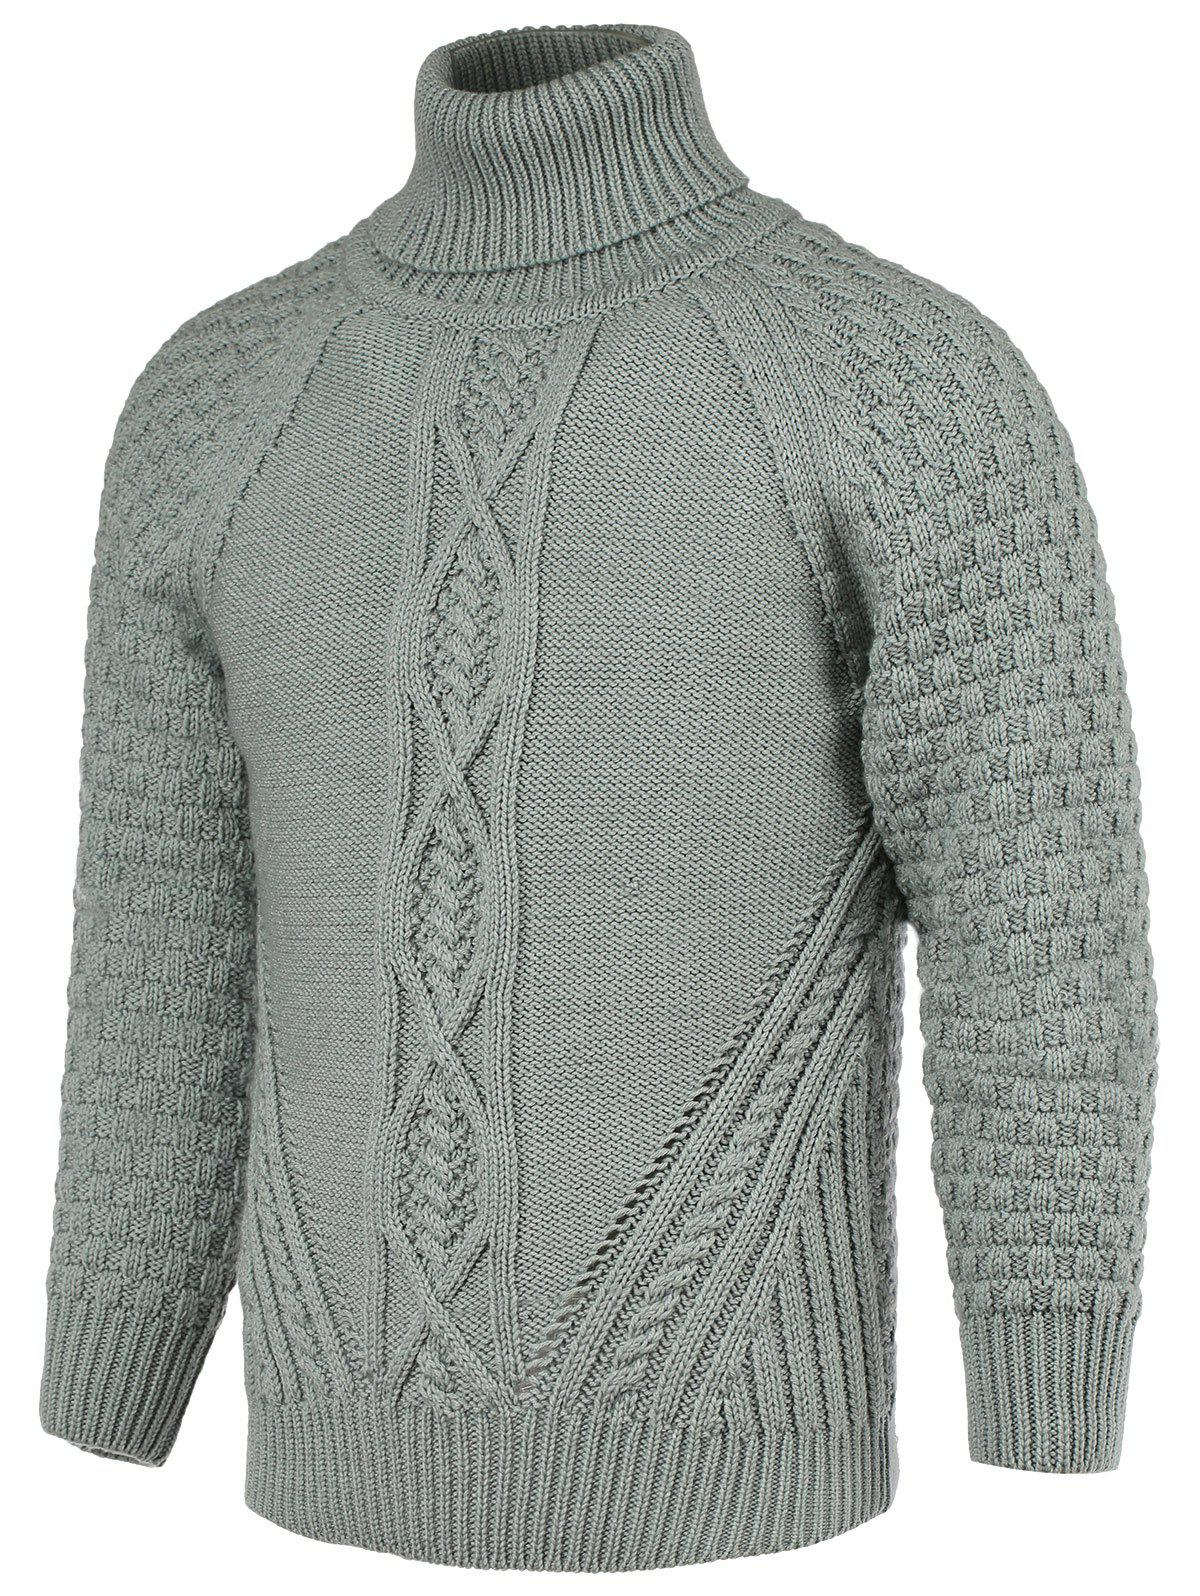 Braid Pattern Turtleneck Men's Raglan Sleeve Sweater